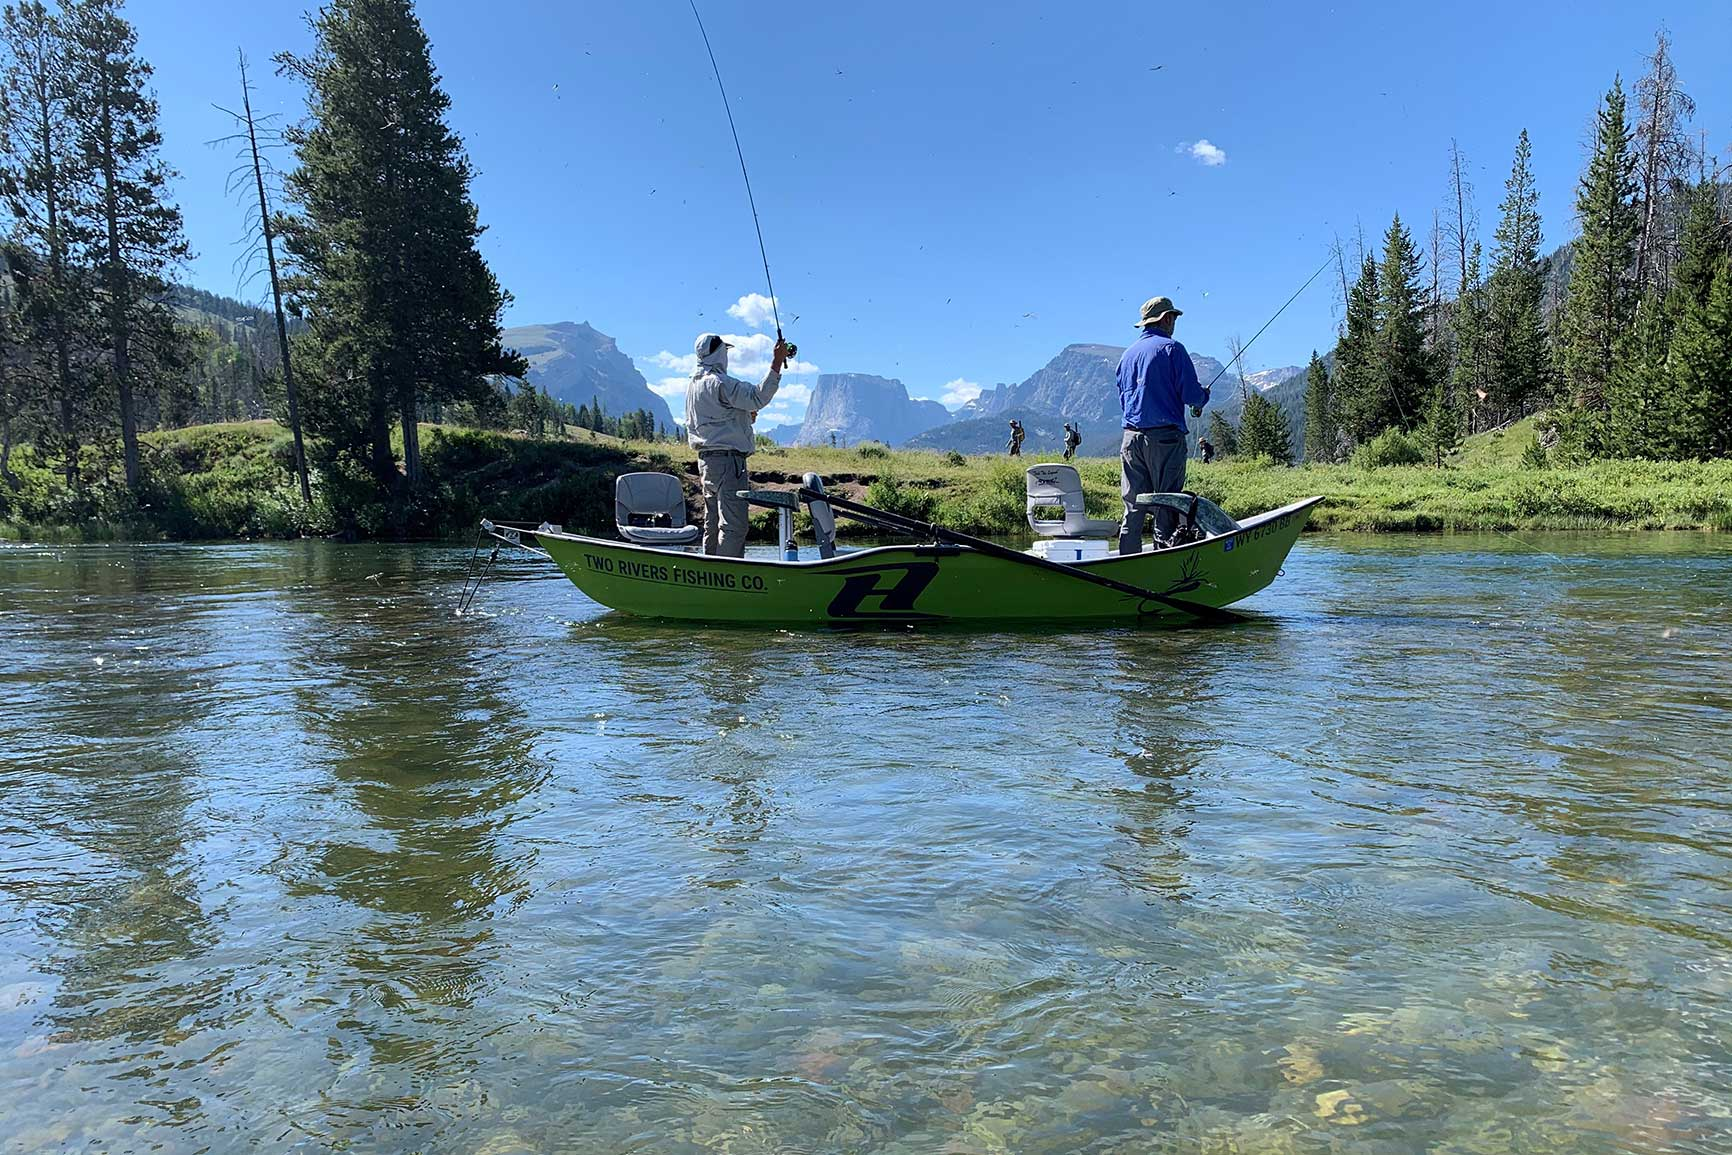 Pinedale, Green River, Wyoming, Trout Fishing, Two Rivers CO.